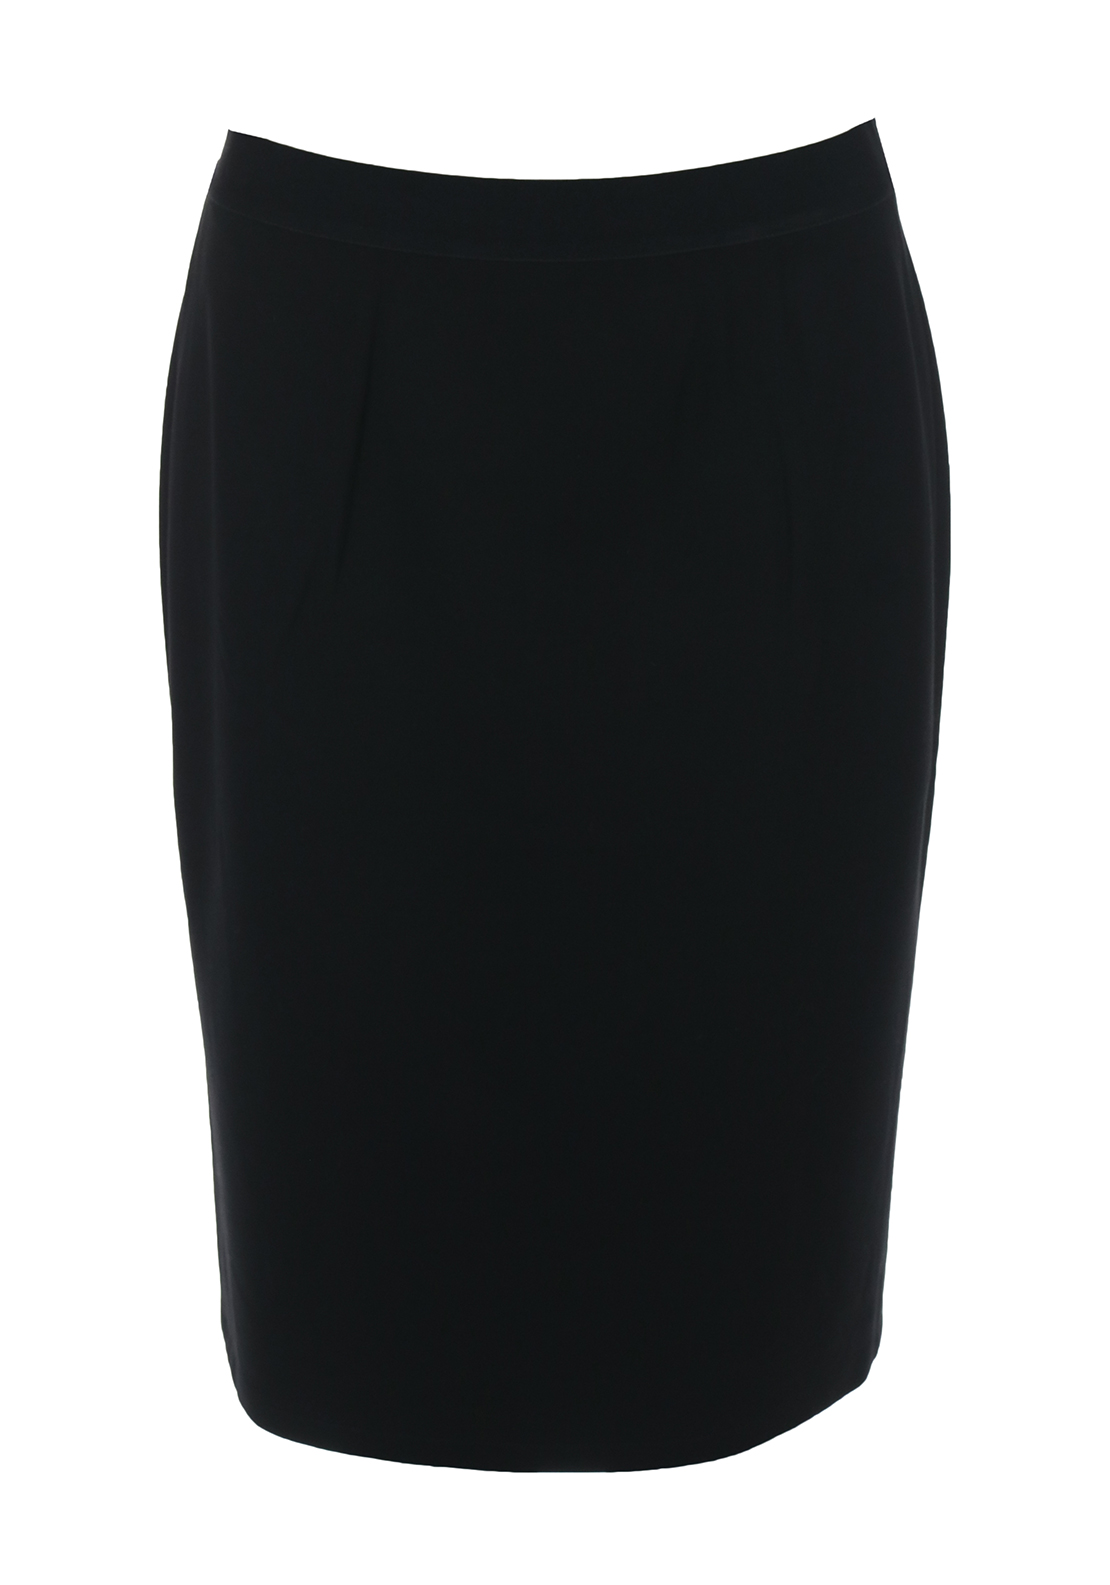 Gerry Weber Jersey Pencil Skirt, Black